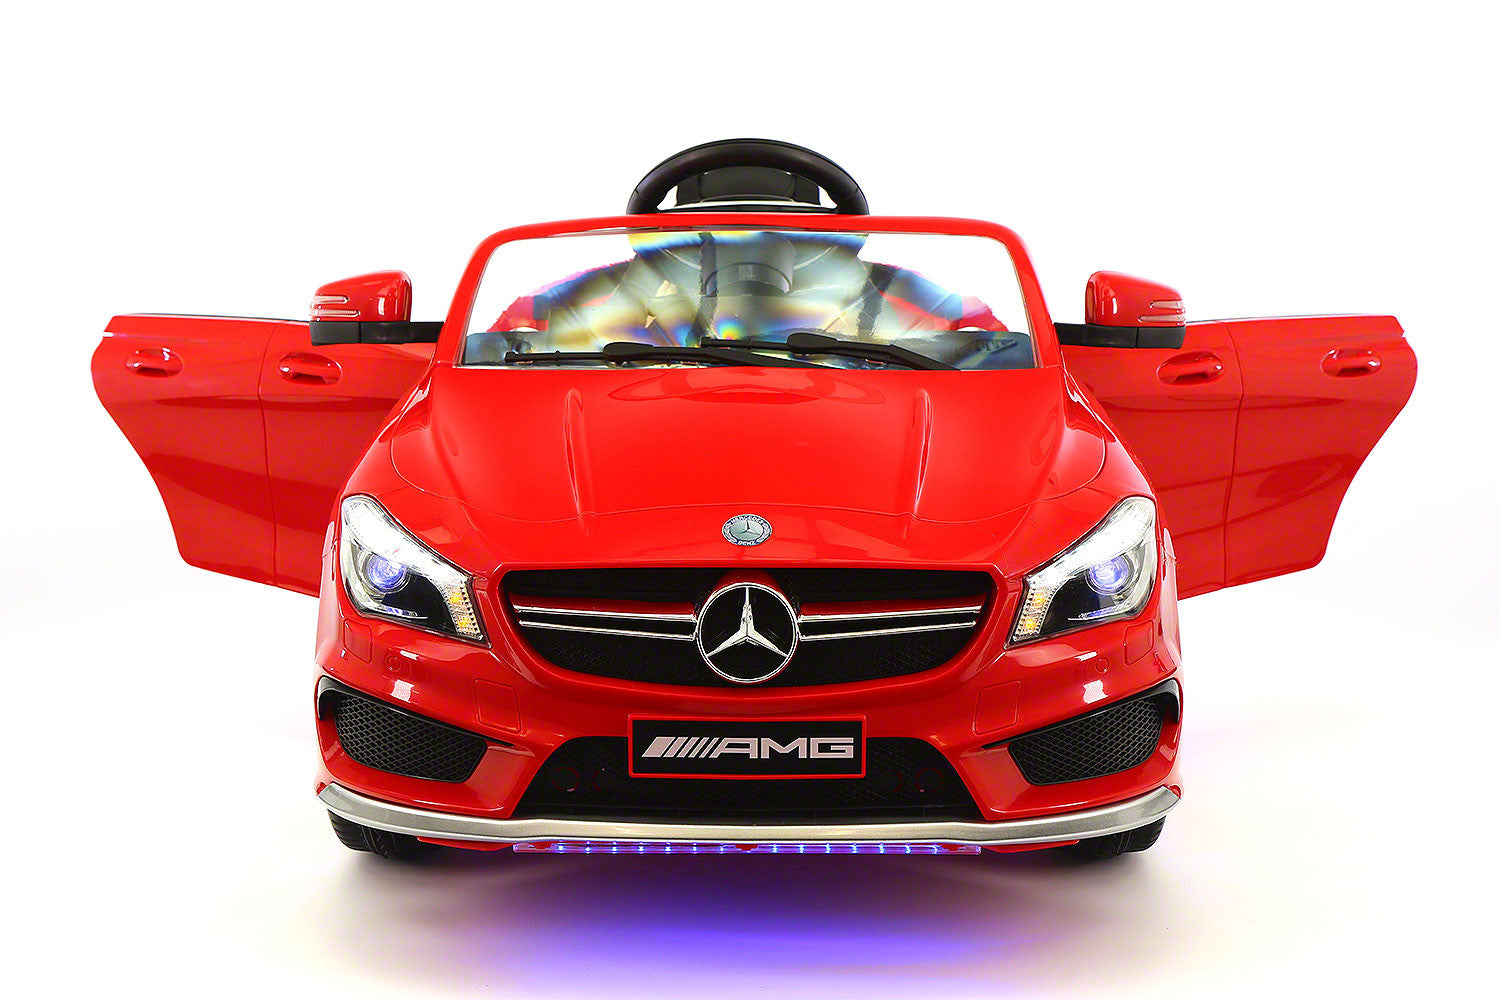 Mercedes Cla45 12 V Kids Ride On Car With R/C...